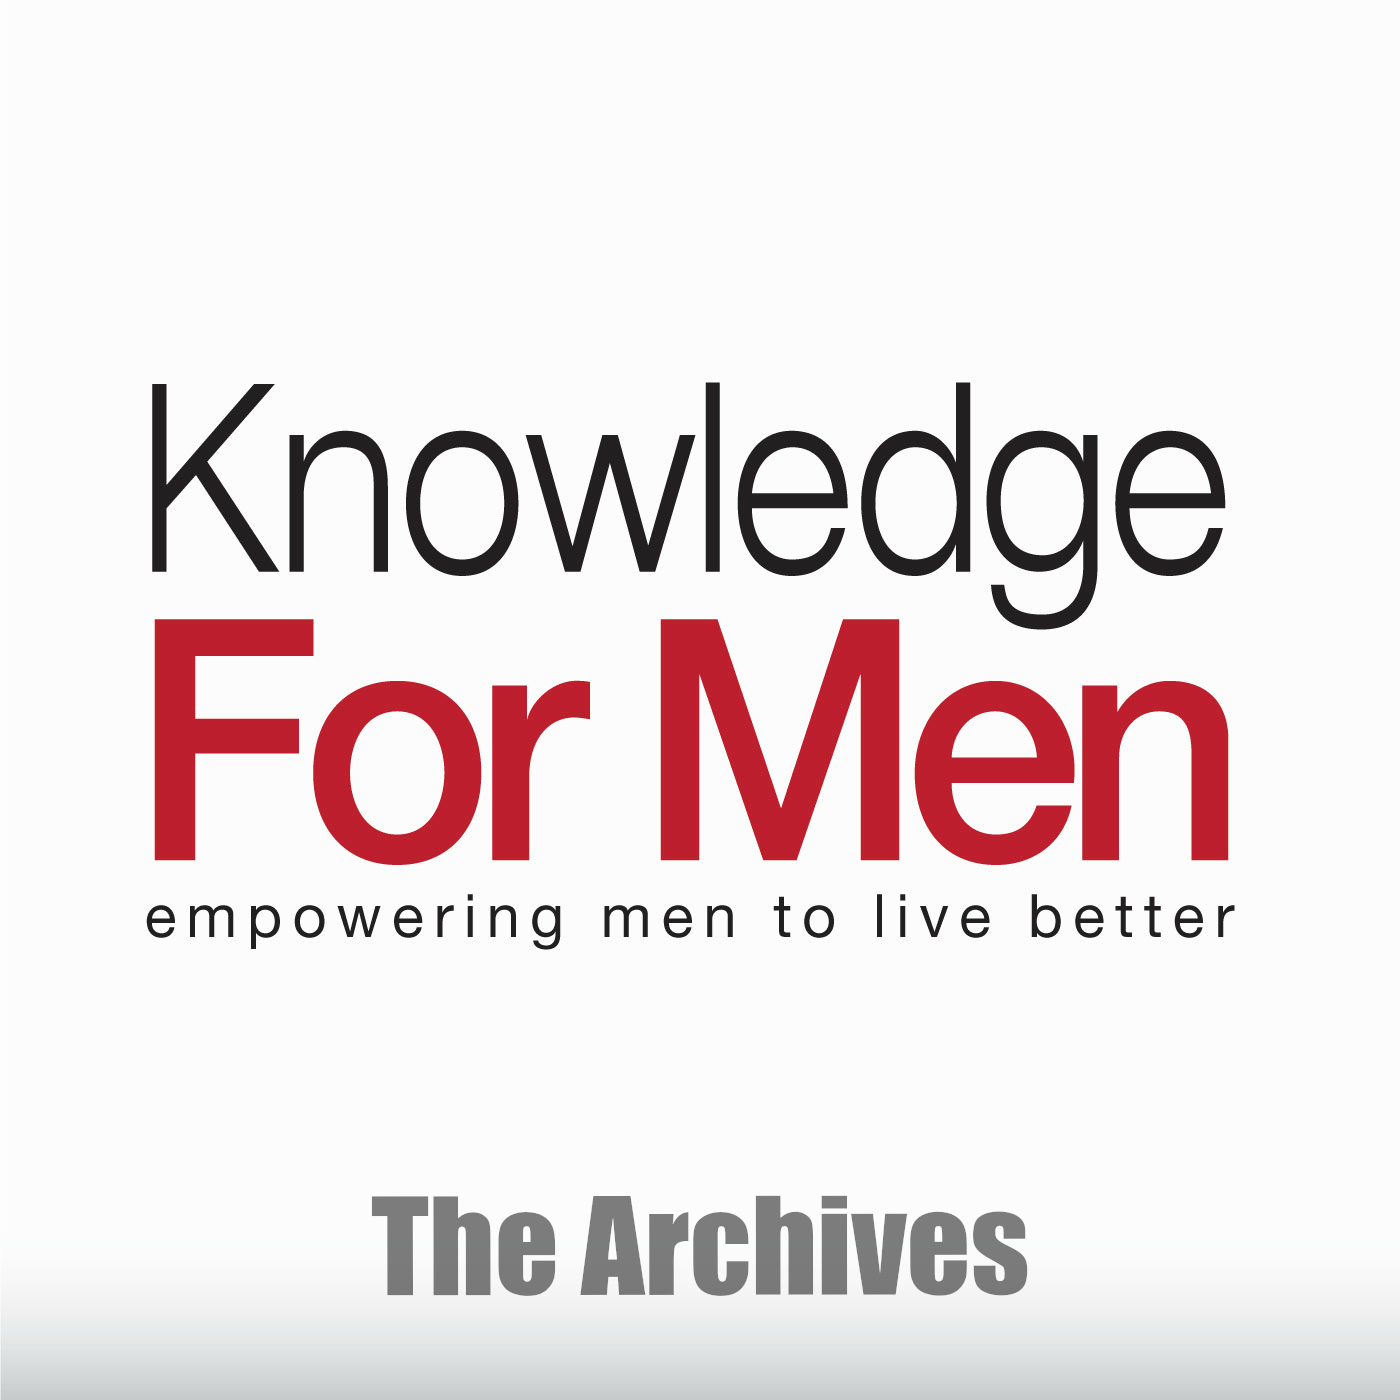 Knowledge For Men Archives show art